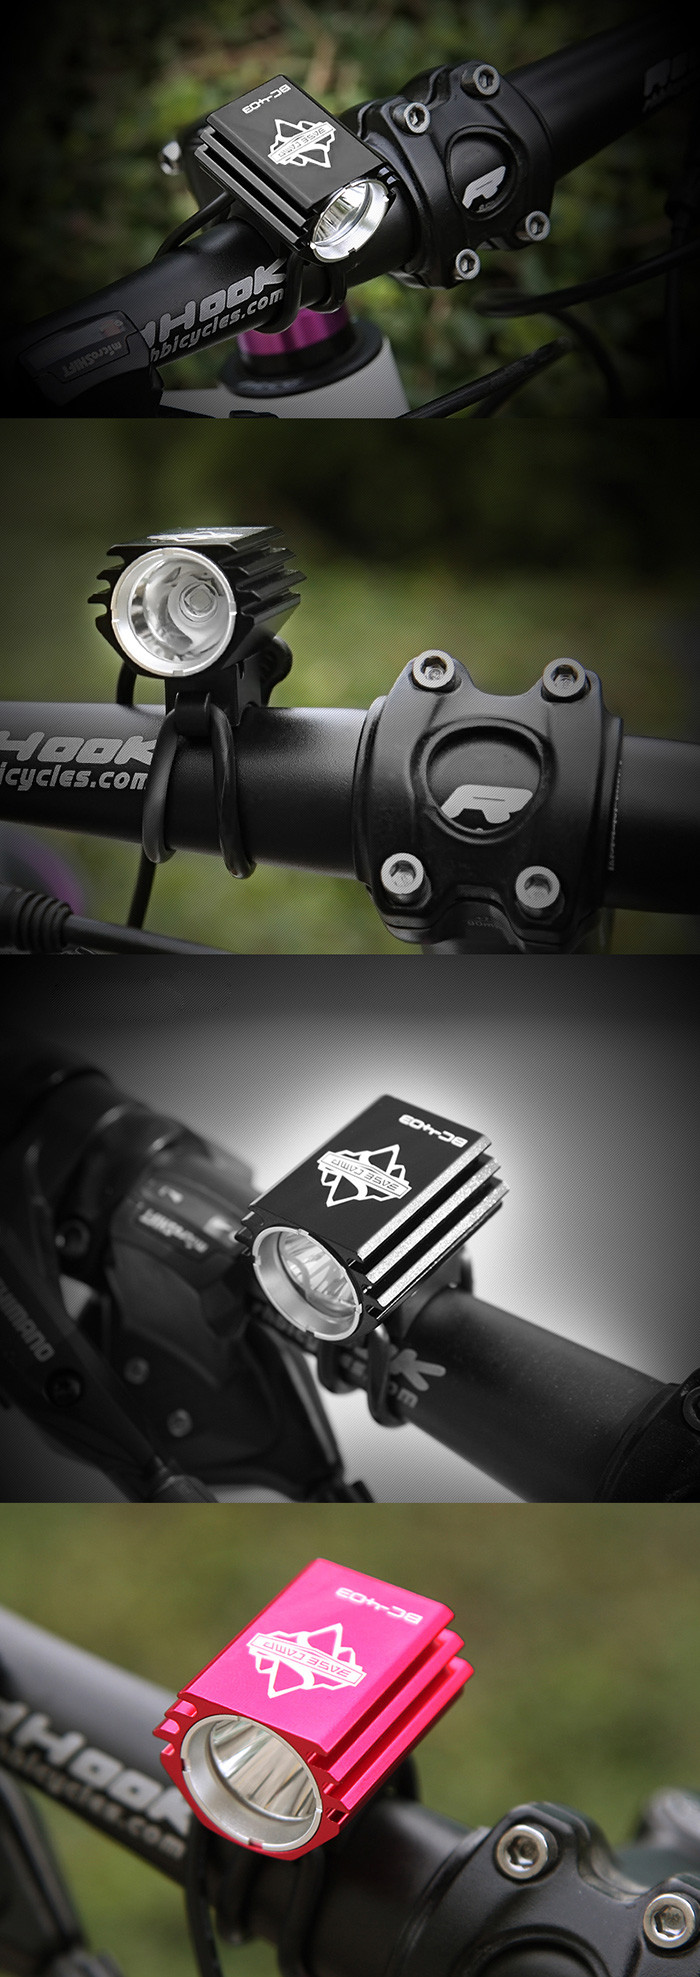 BASECAMP BC-403 1800LM 4 Modes Bicycle Flashing Light with Constant Focal Length